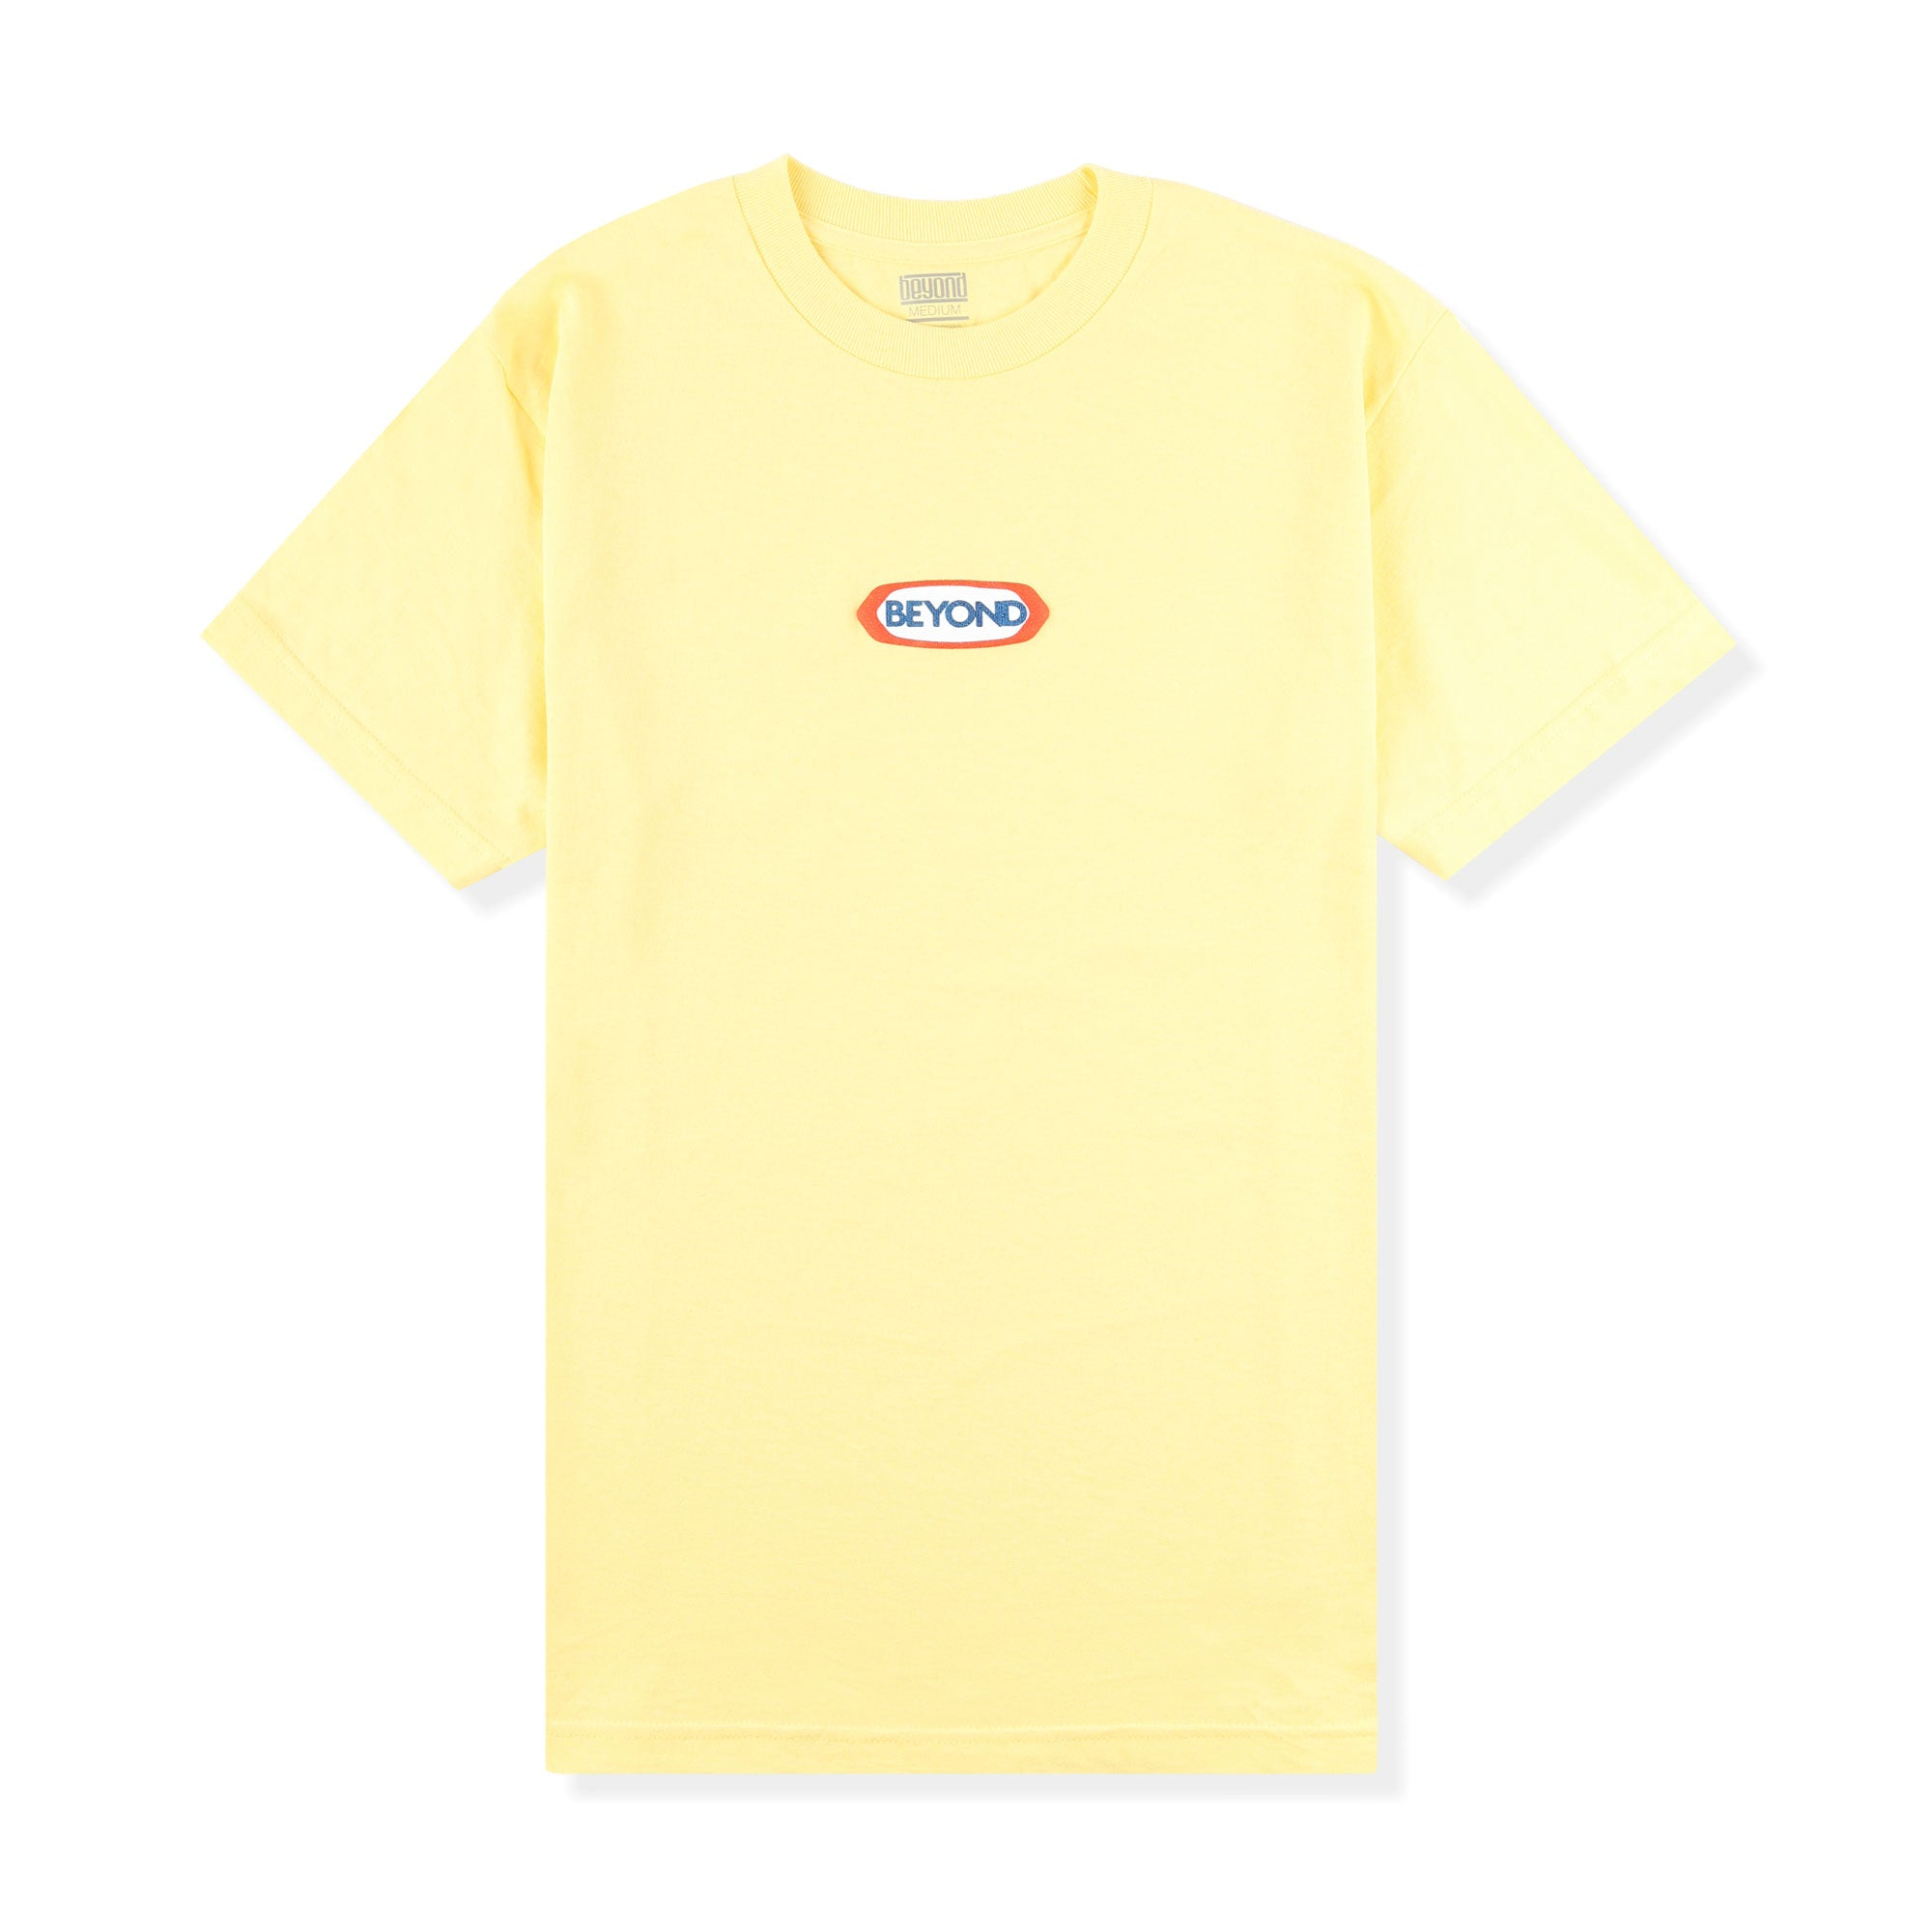 Beyond Cheddar Tee Product Photo #1